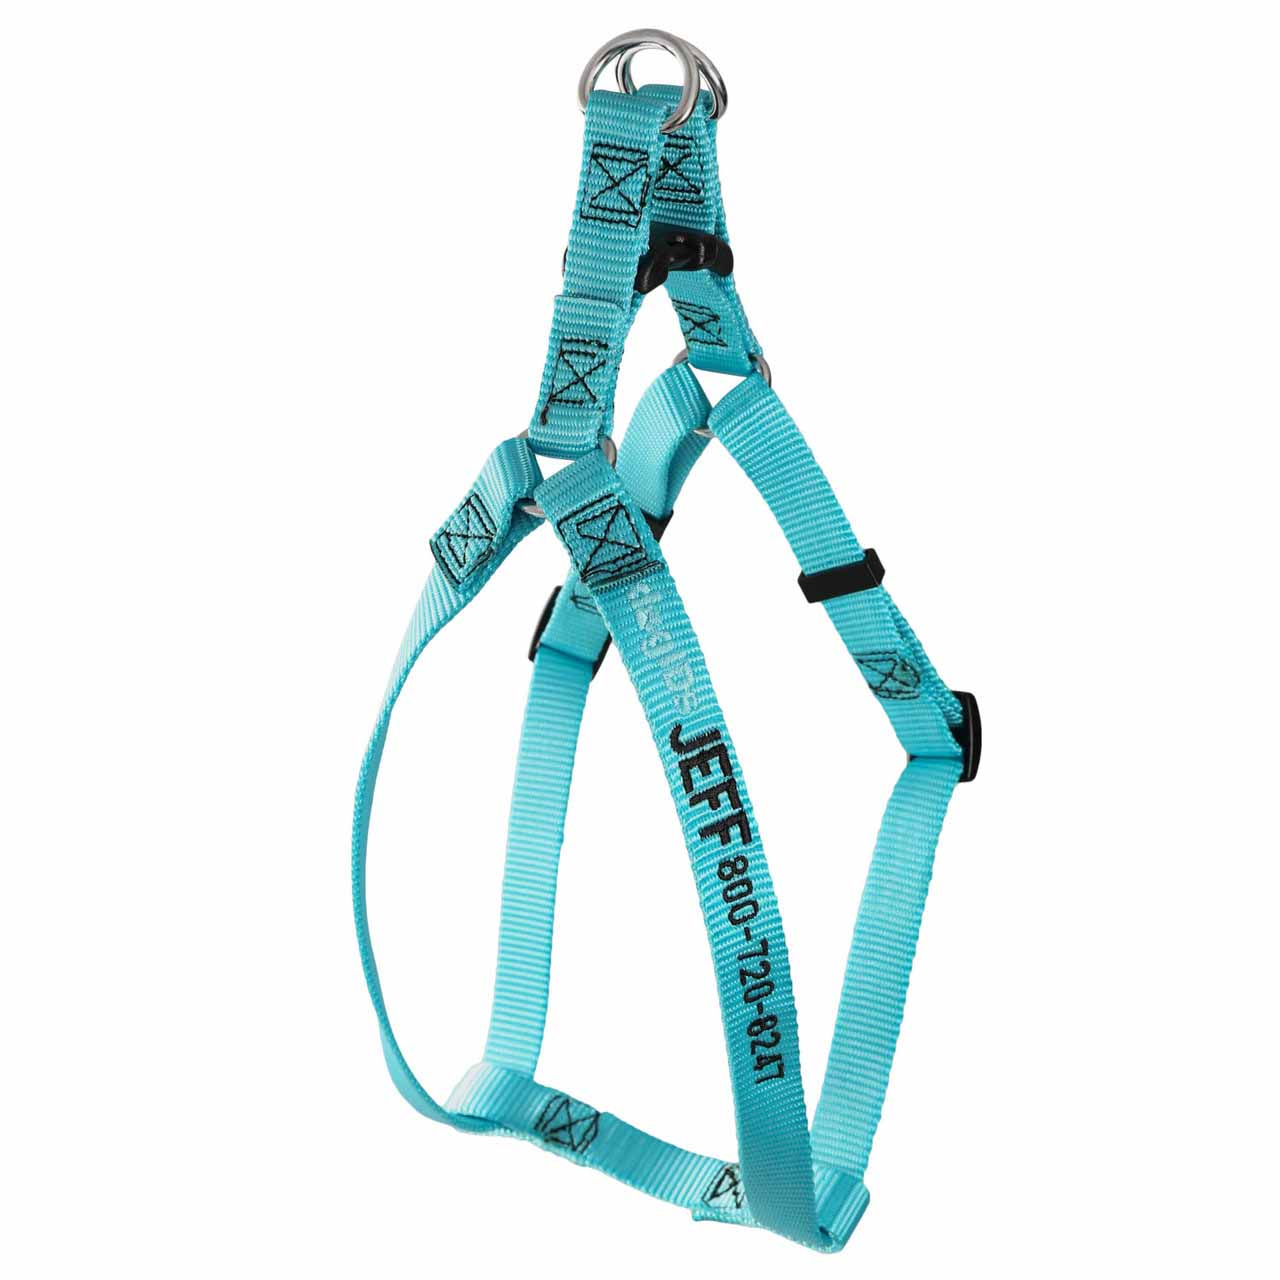 Embroidered Nylon Step-In Dog Harness Turquoise